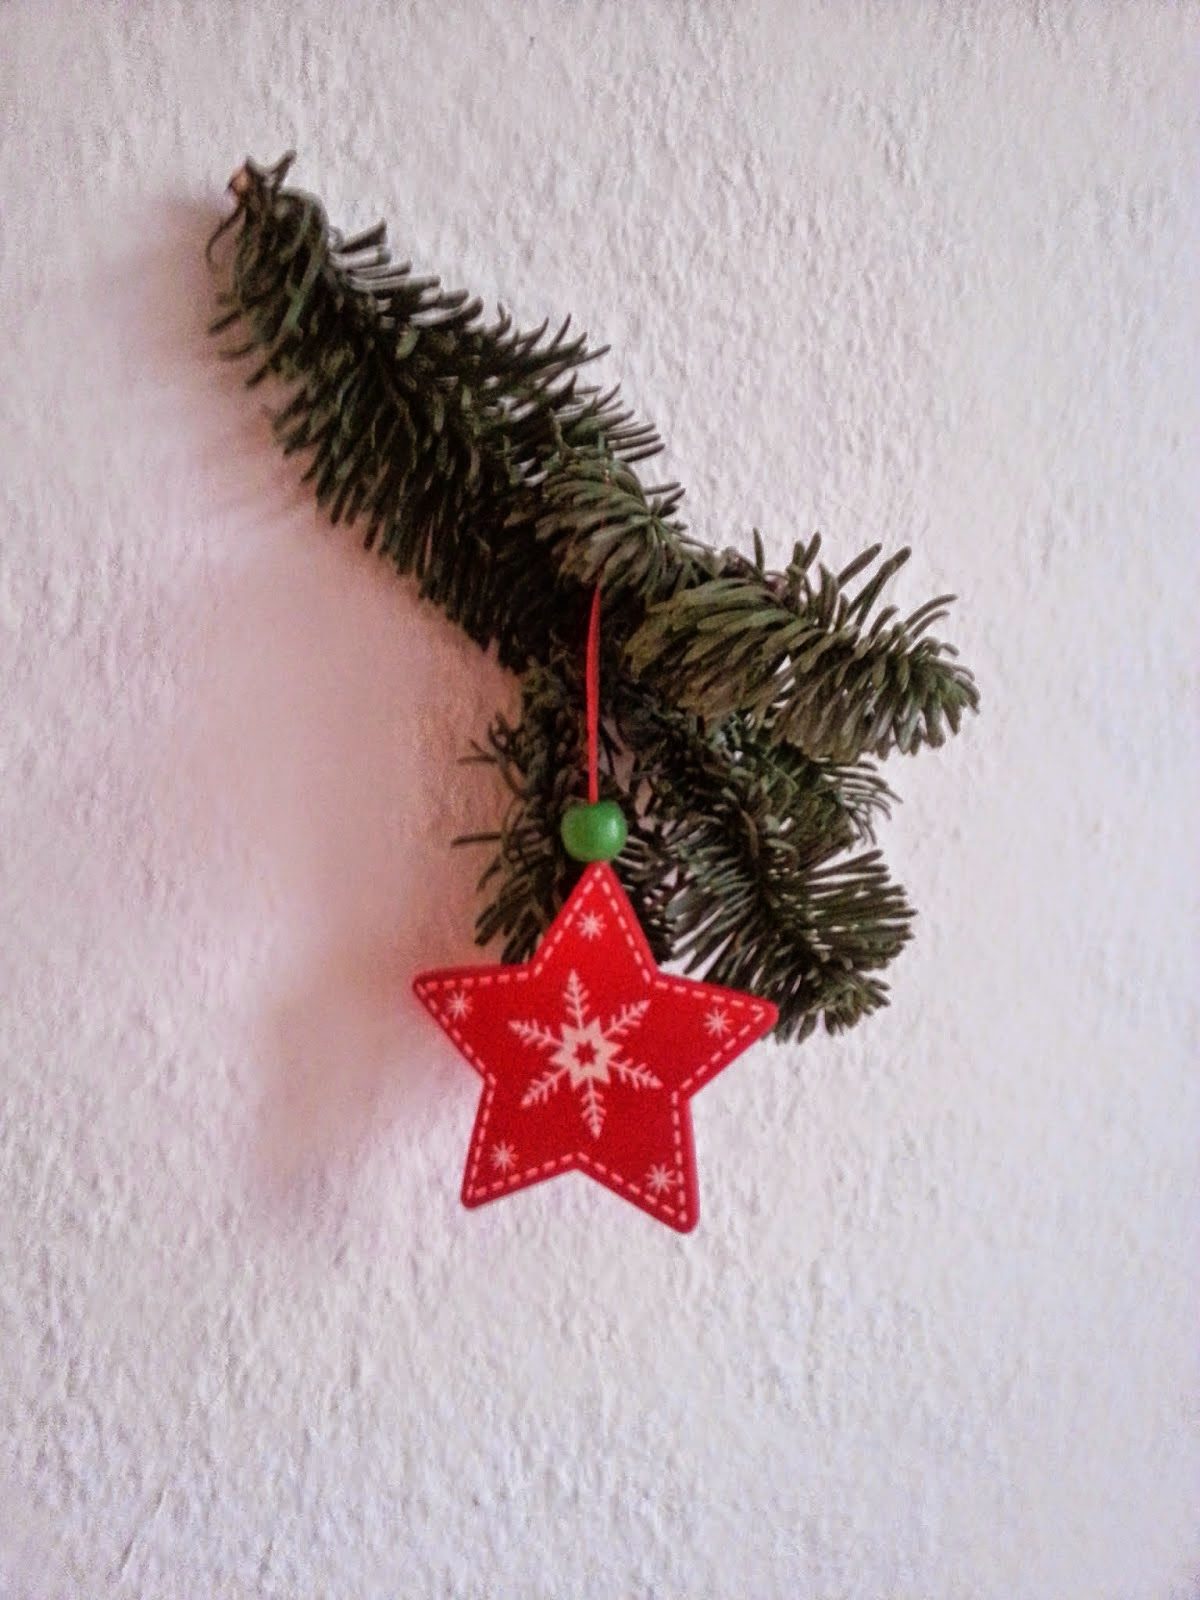 Christmas decoration - a branch of a Christmas tree and a star